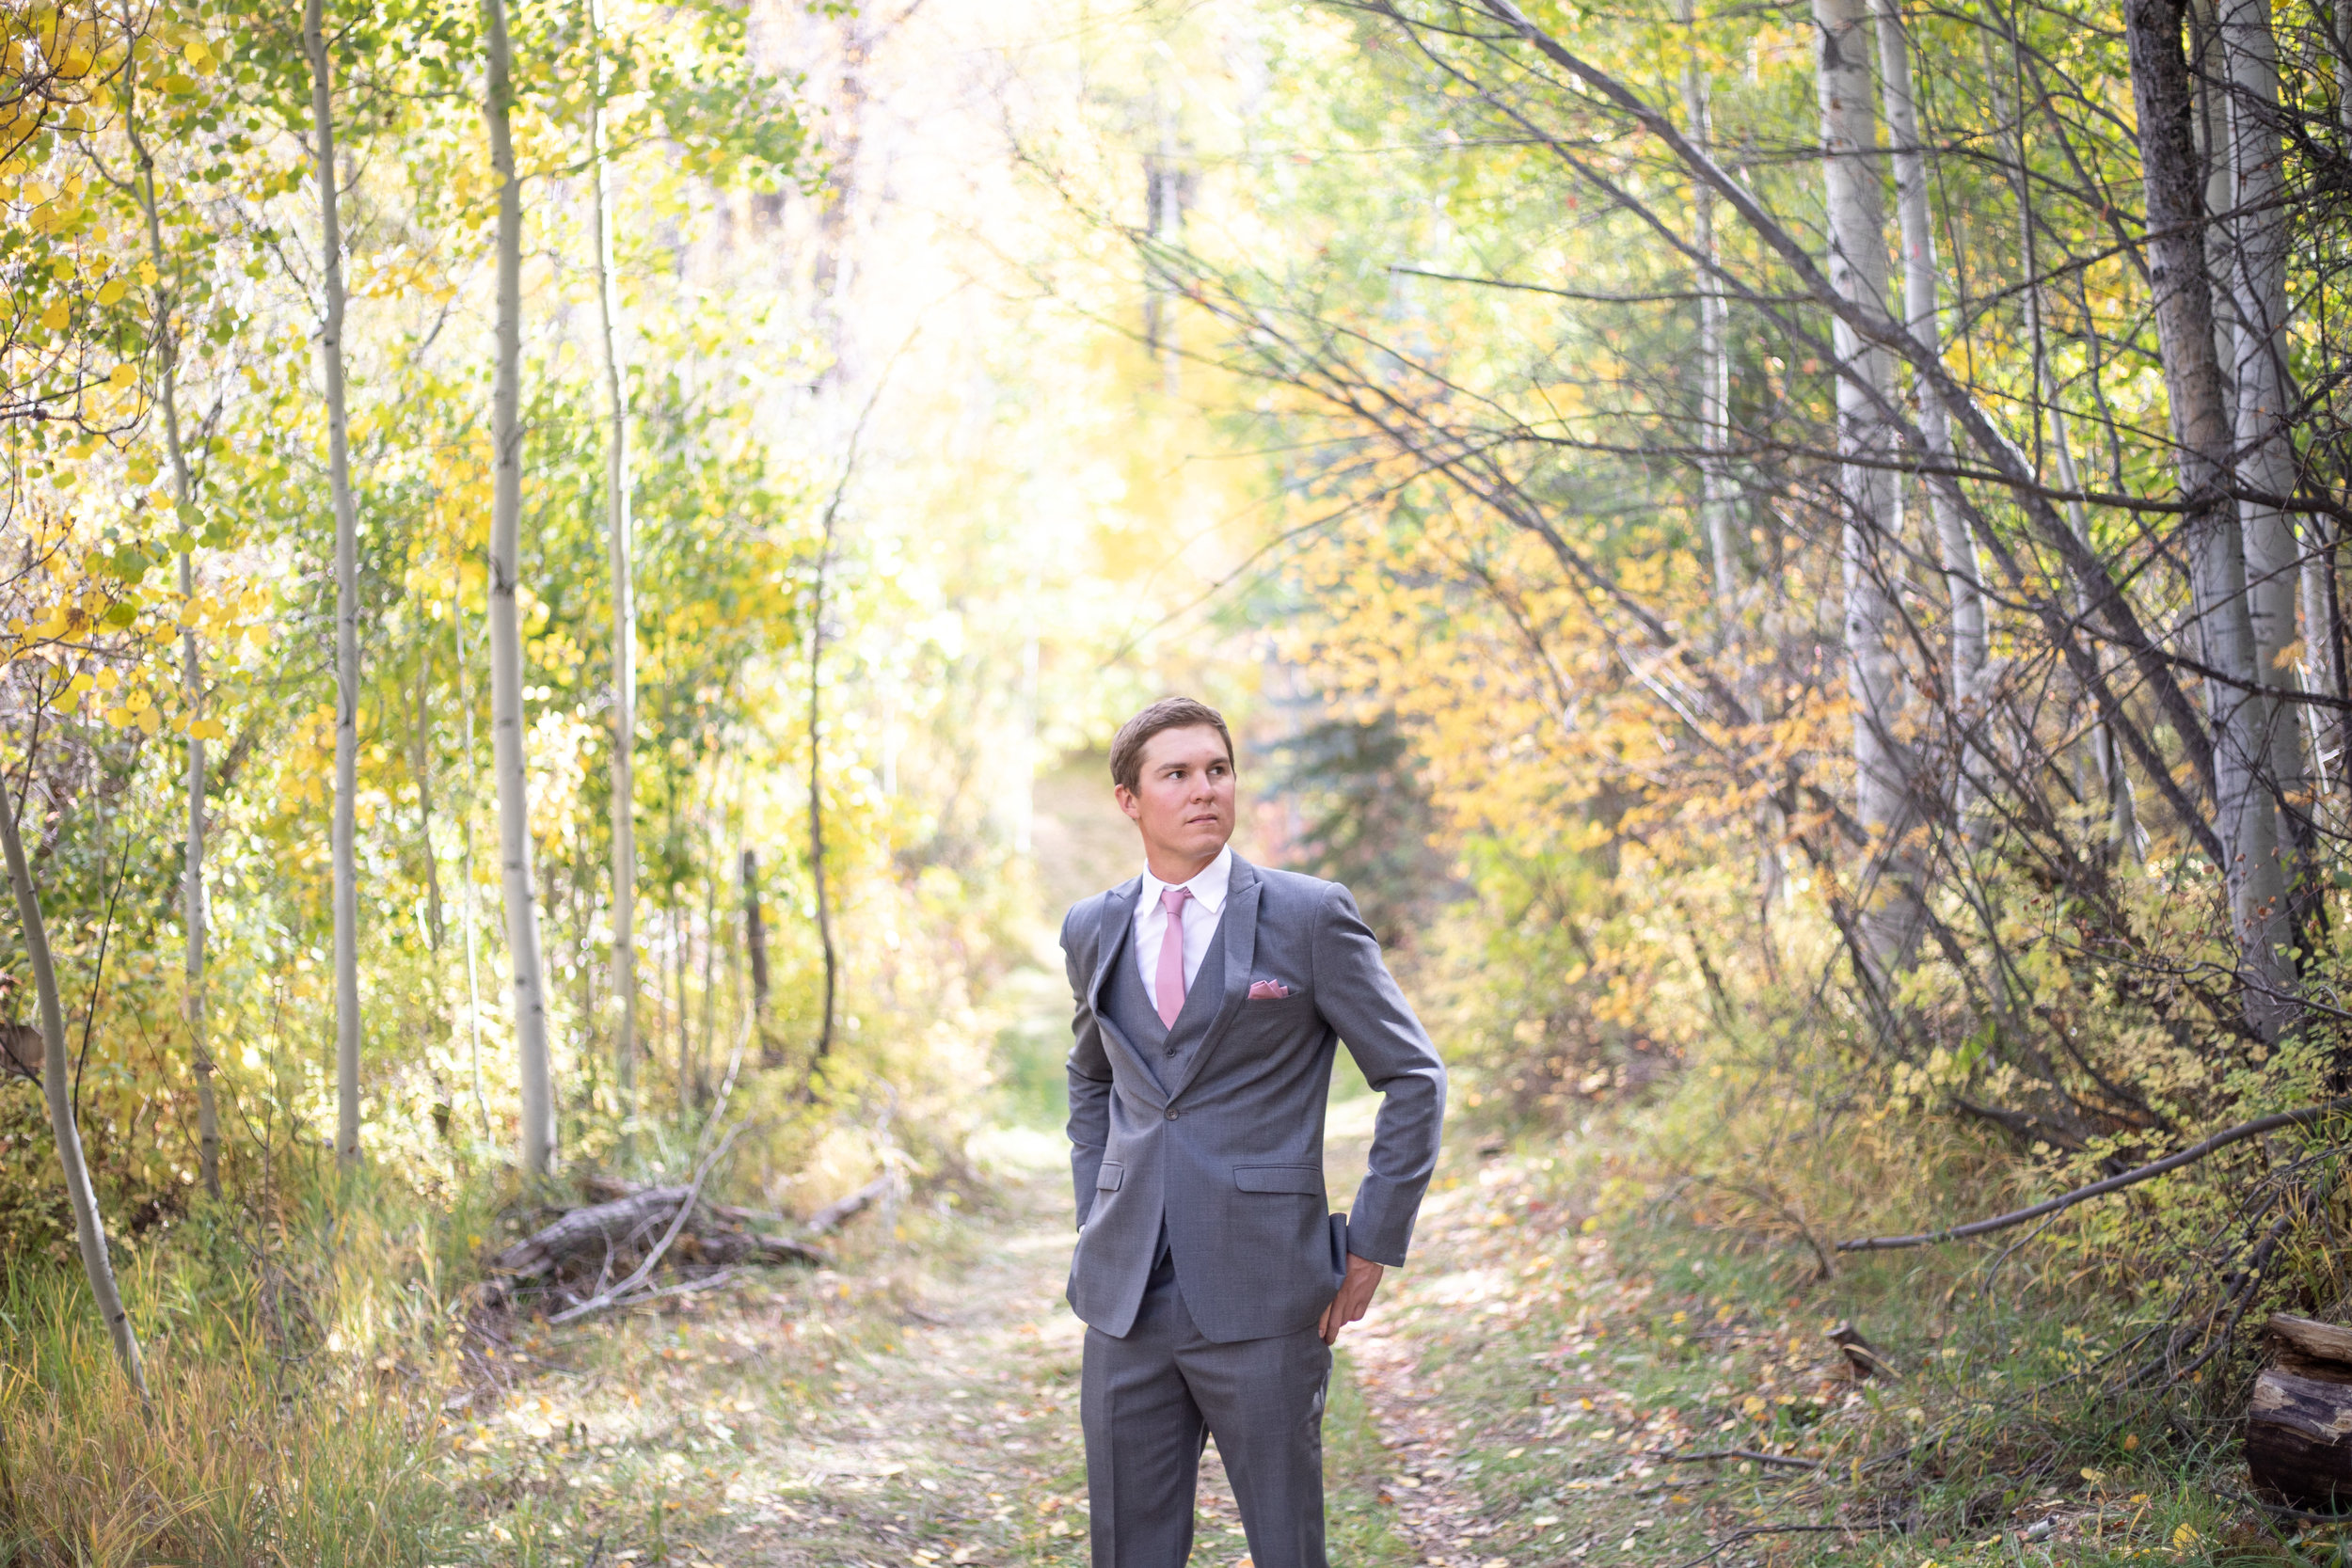 groom wedding photo portrait durango colorado